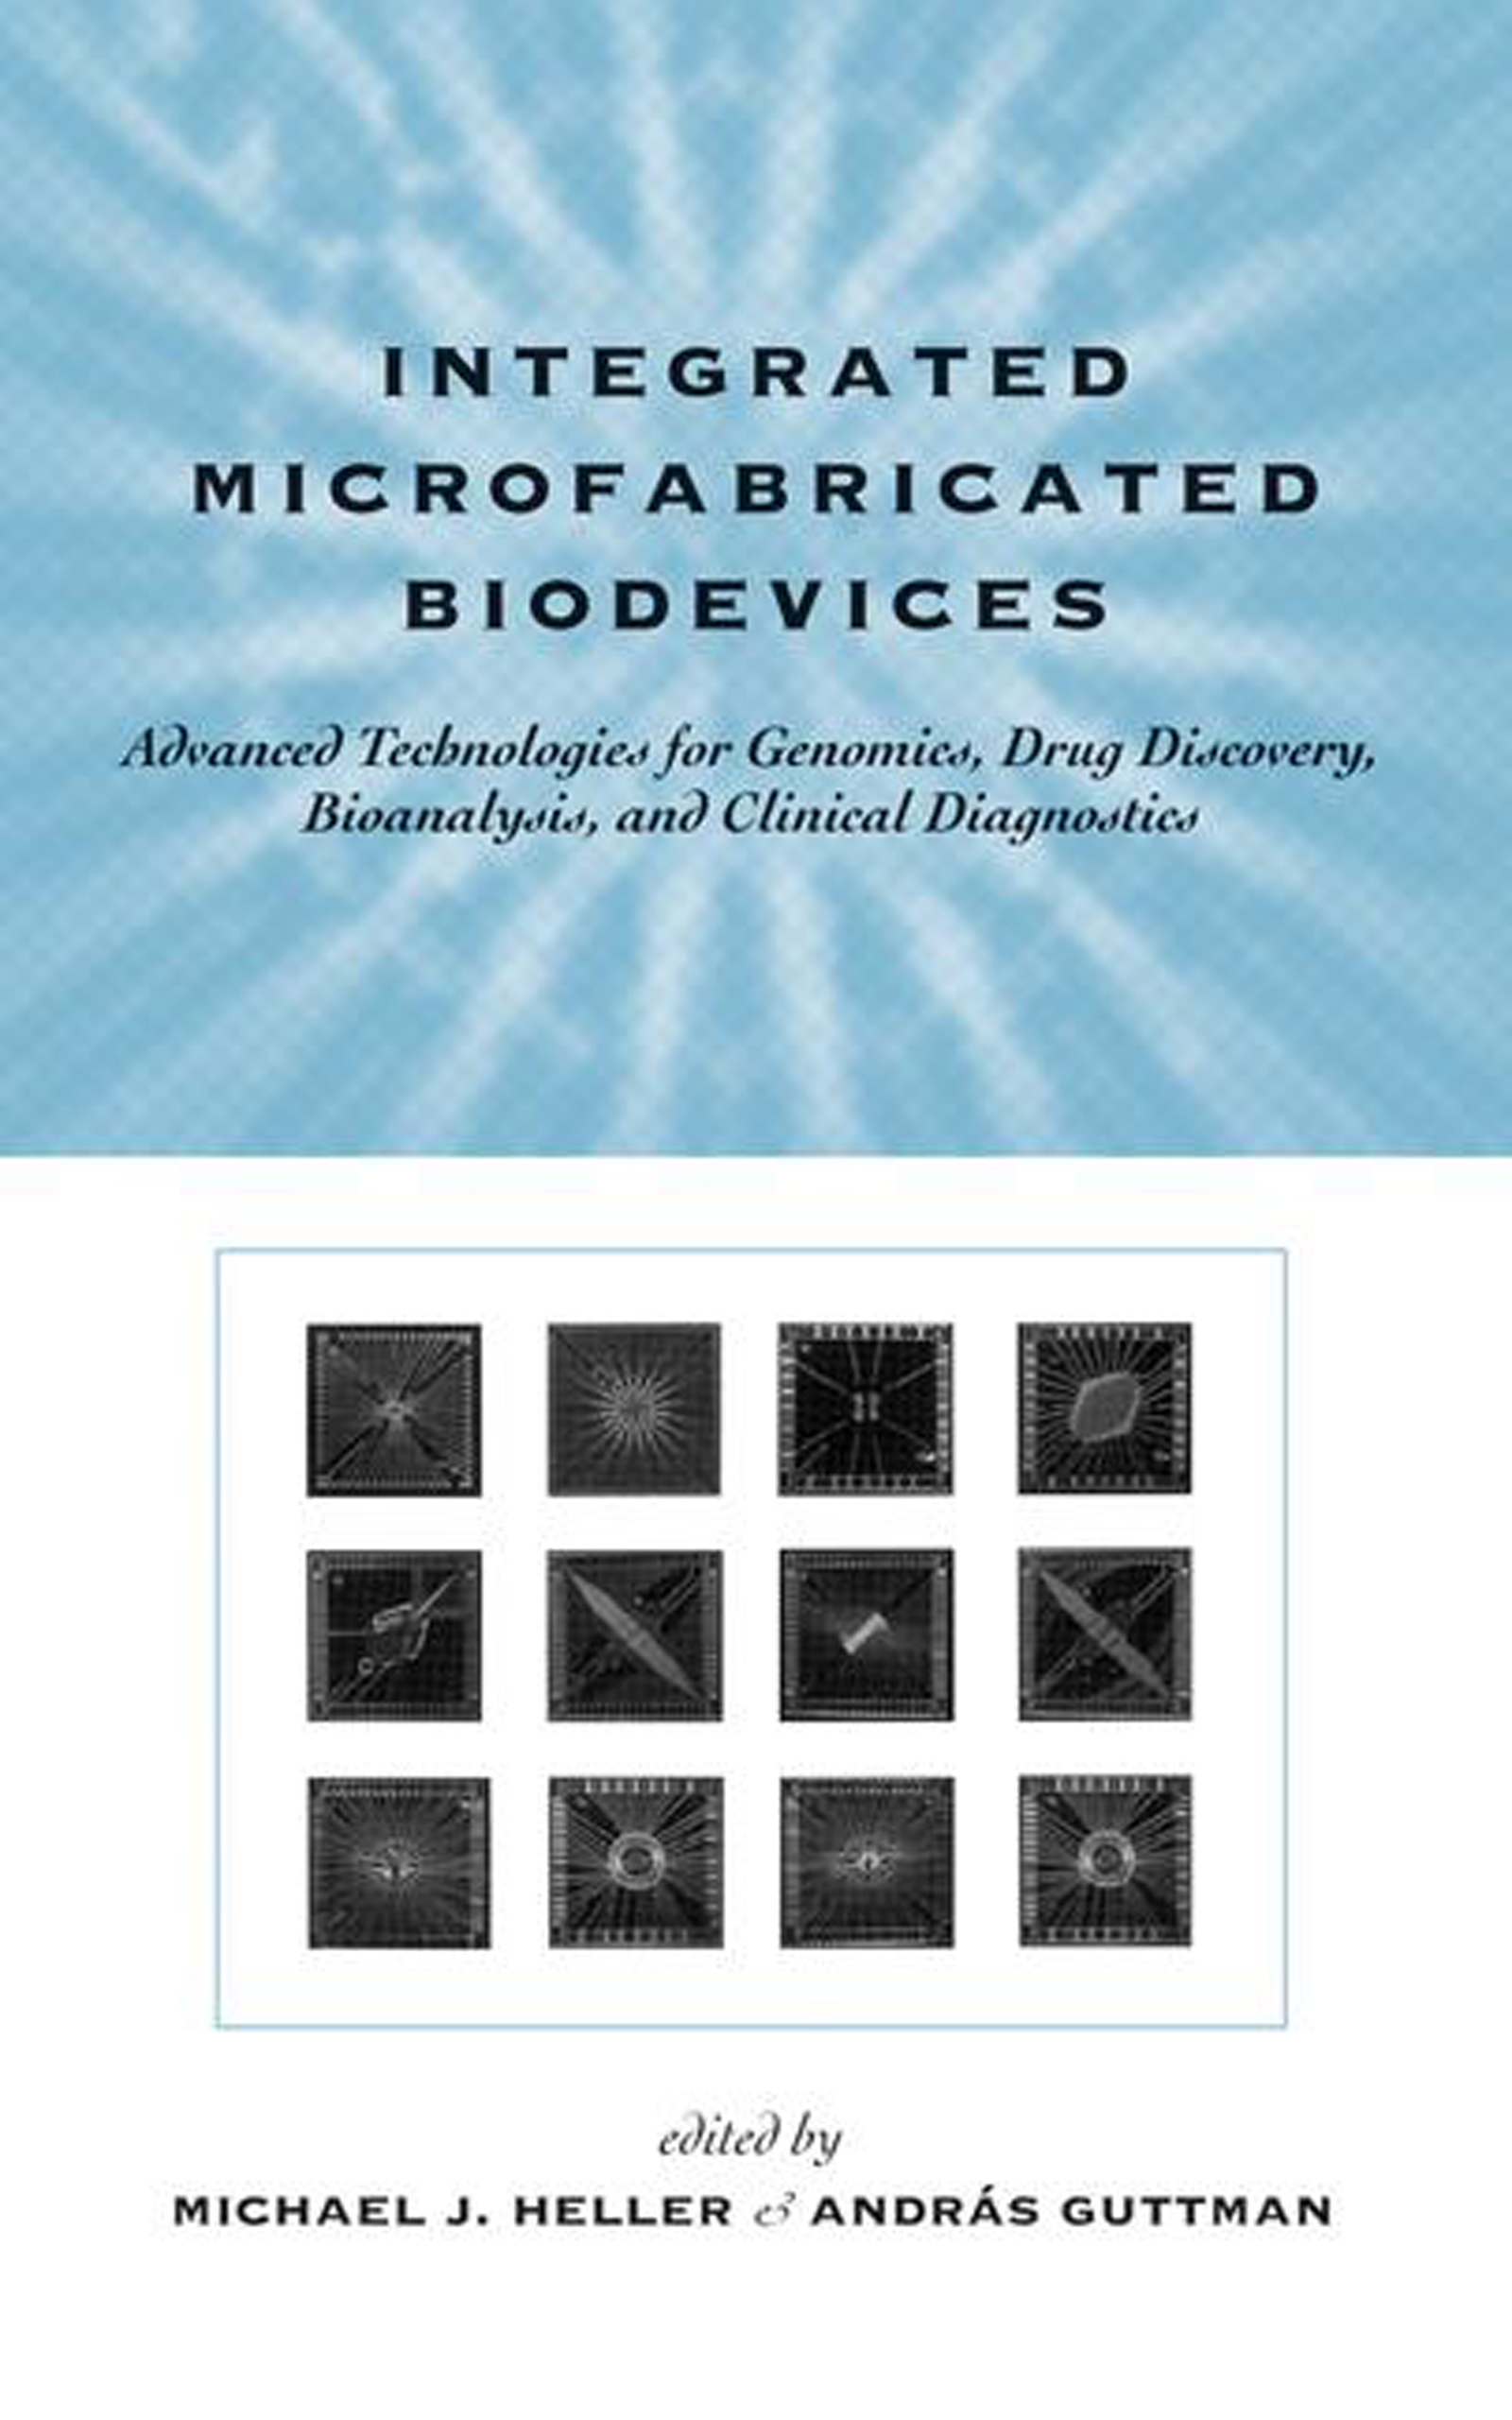 Integrated Microfabricated Biodevices: Advanced Technologies for Genomics, Drug Discovery, Bioanalysis, and Clinical Diagnostics, 1st Edition (Hardback) book cover